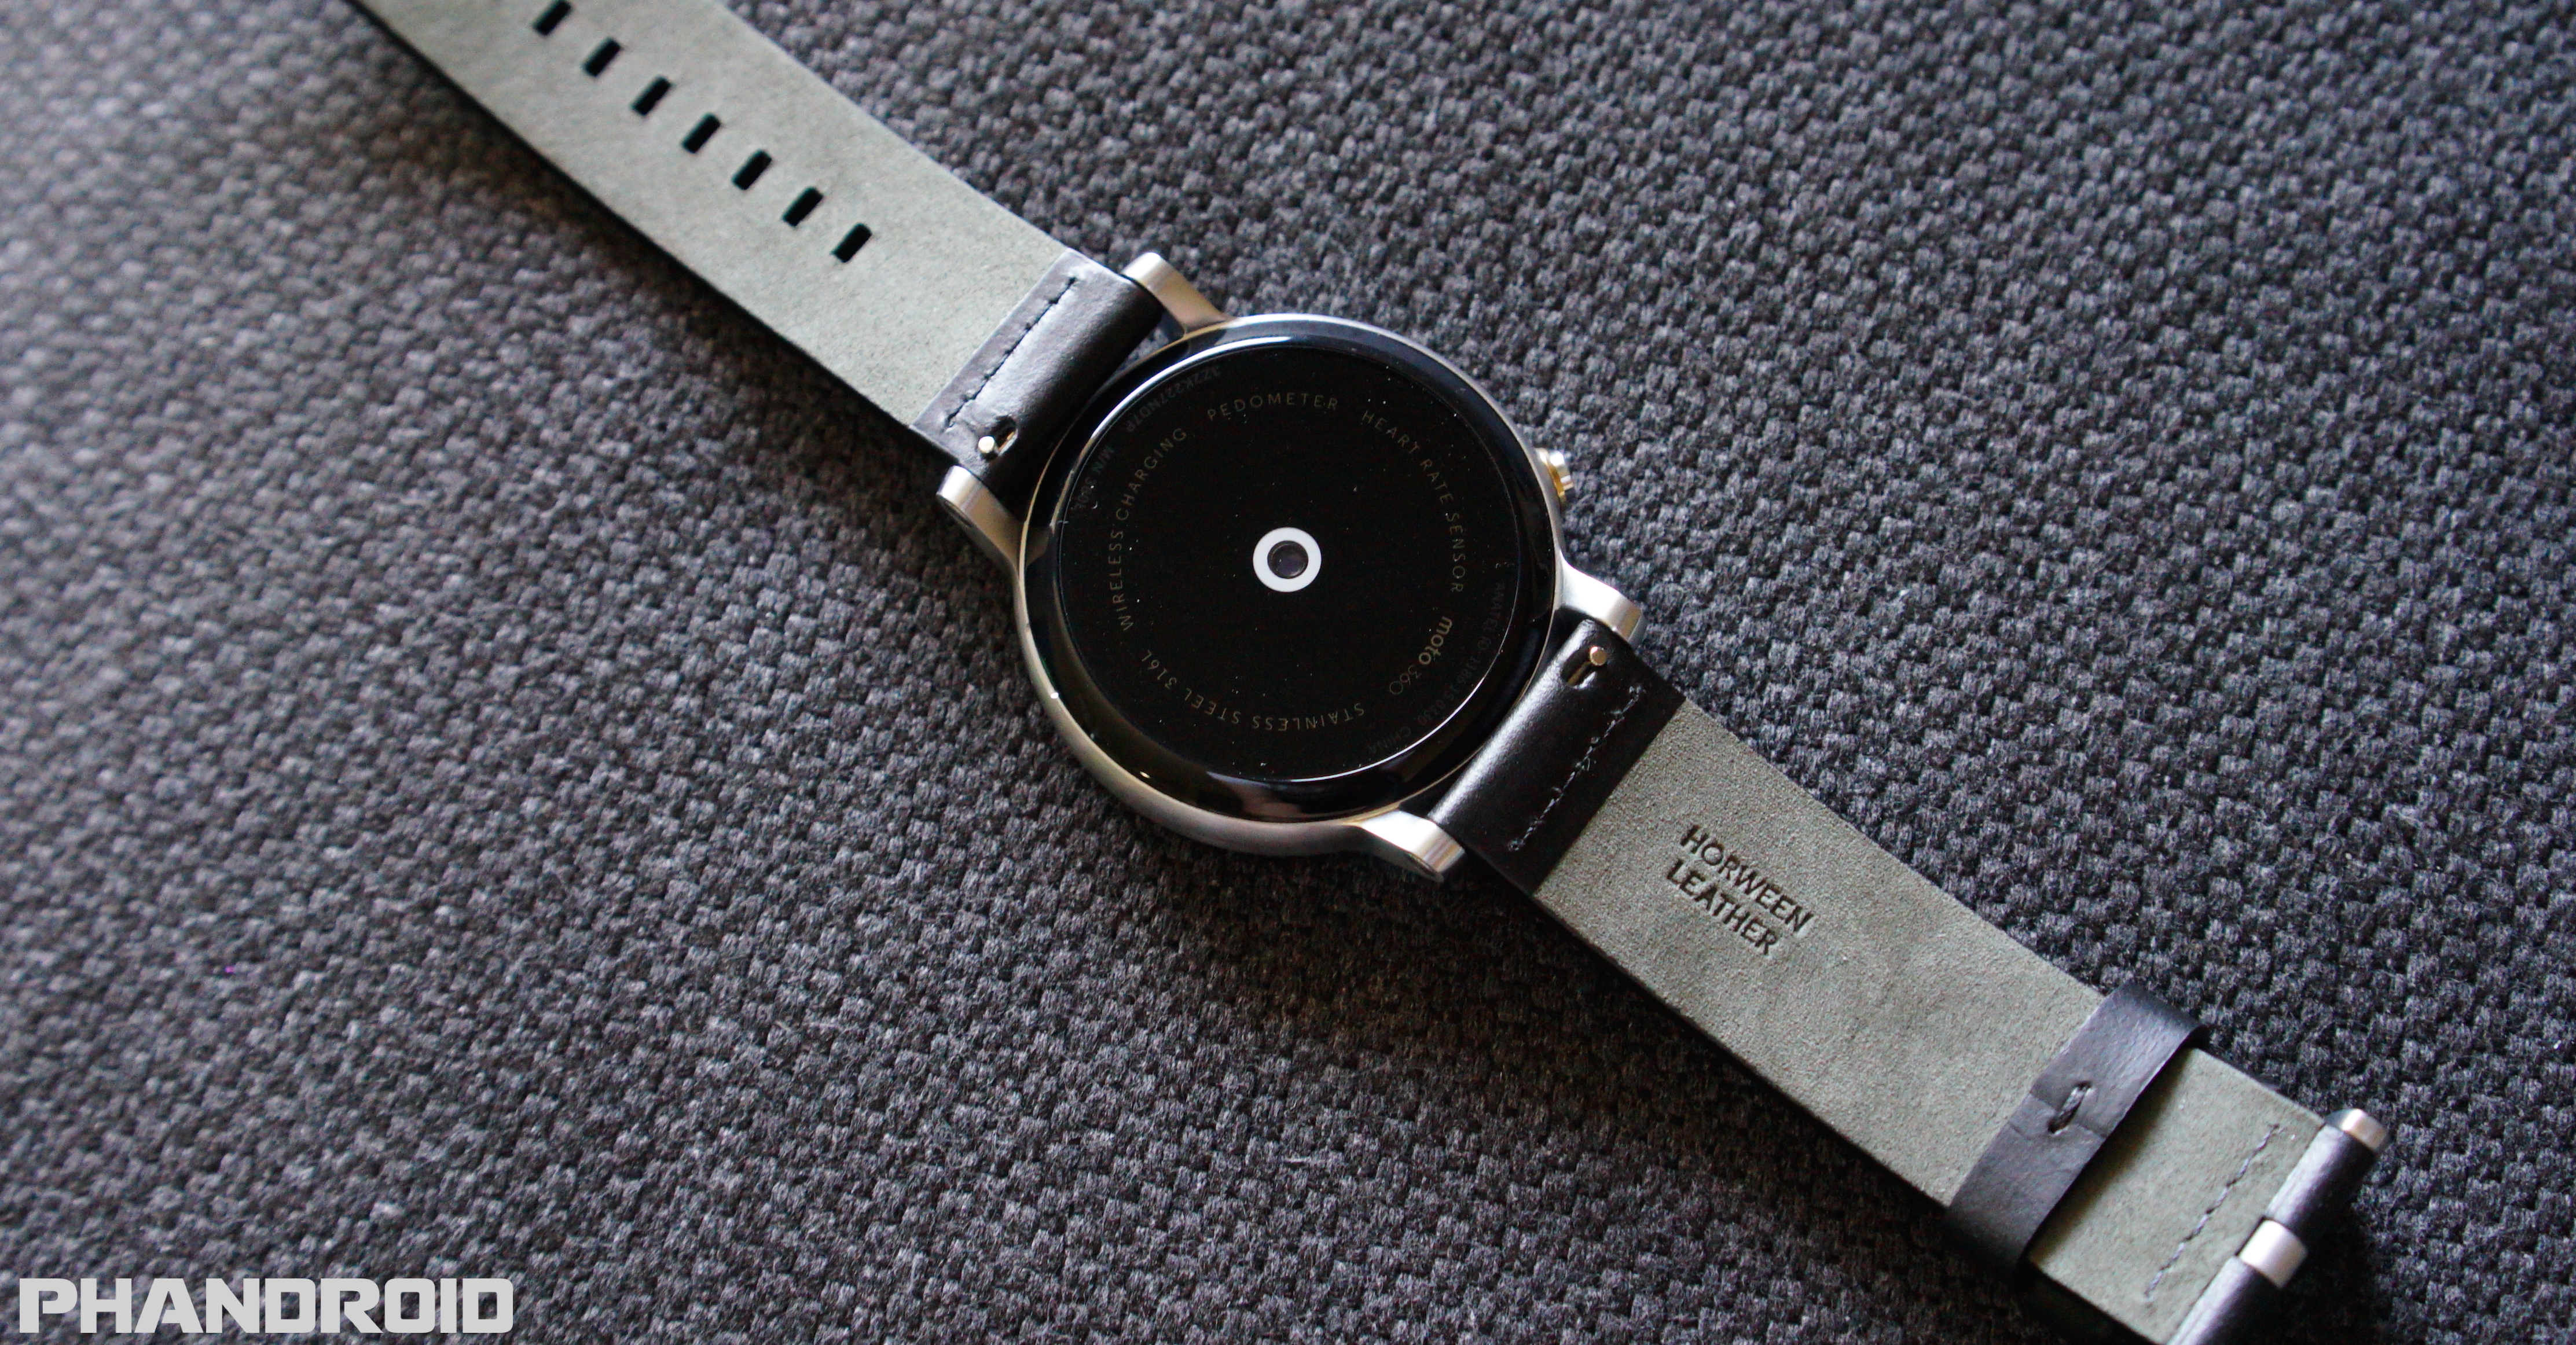 Moto 360 2nd Gen Unboxing And First Look Video Motorola Smart Watch Black Leather 2015 Dsc09992